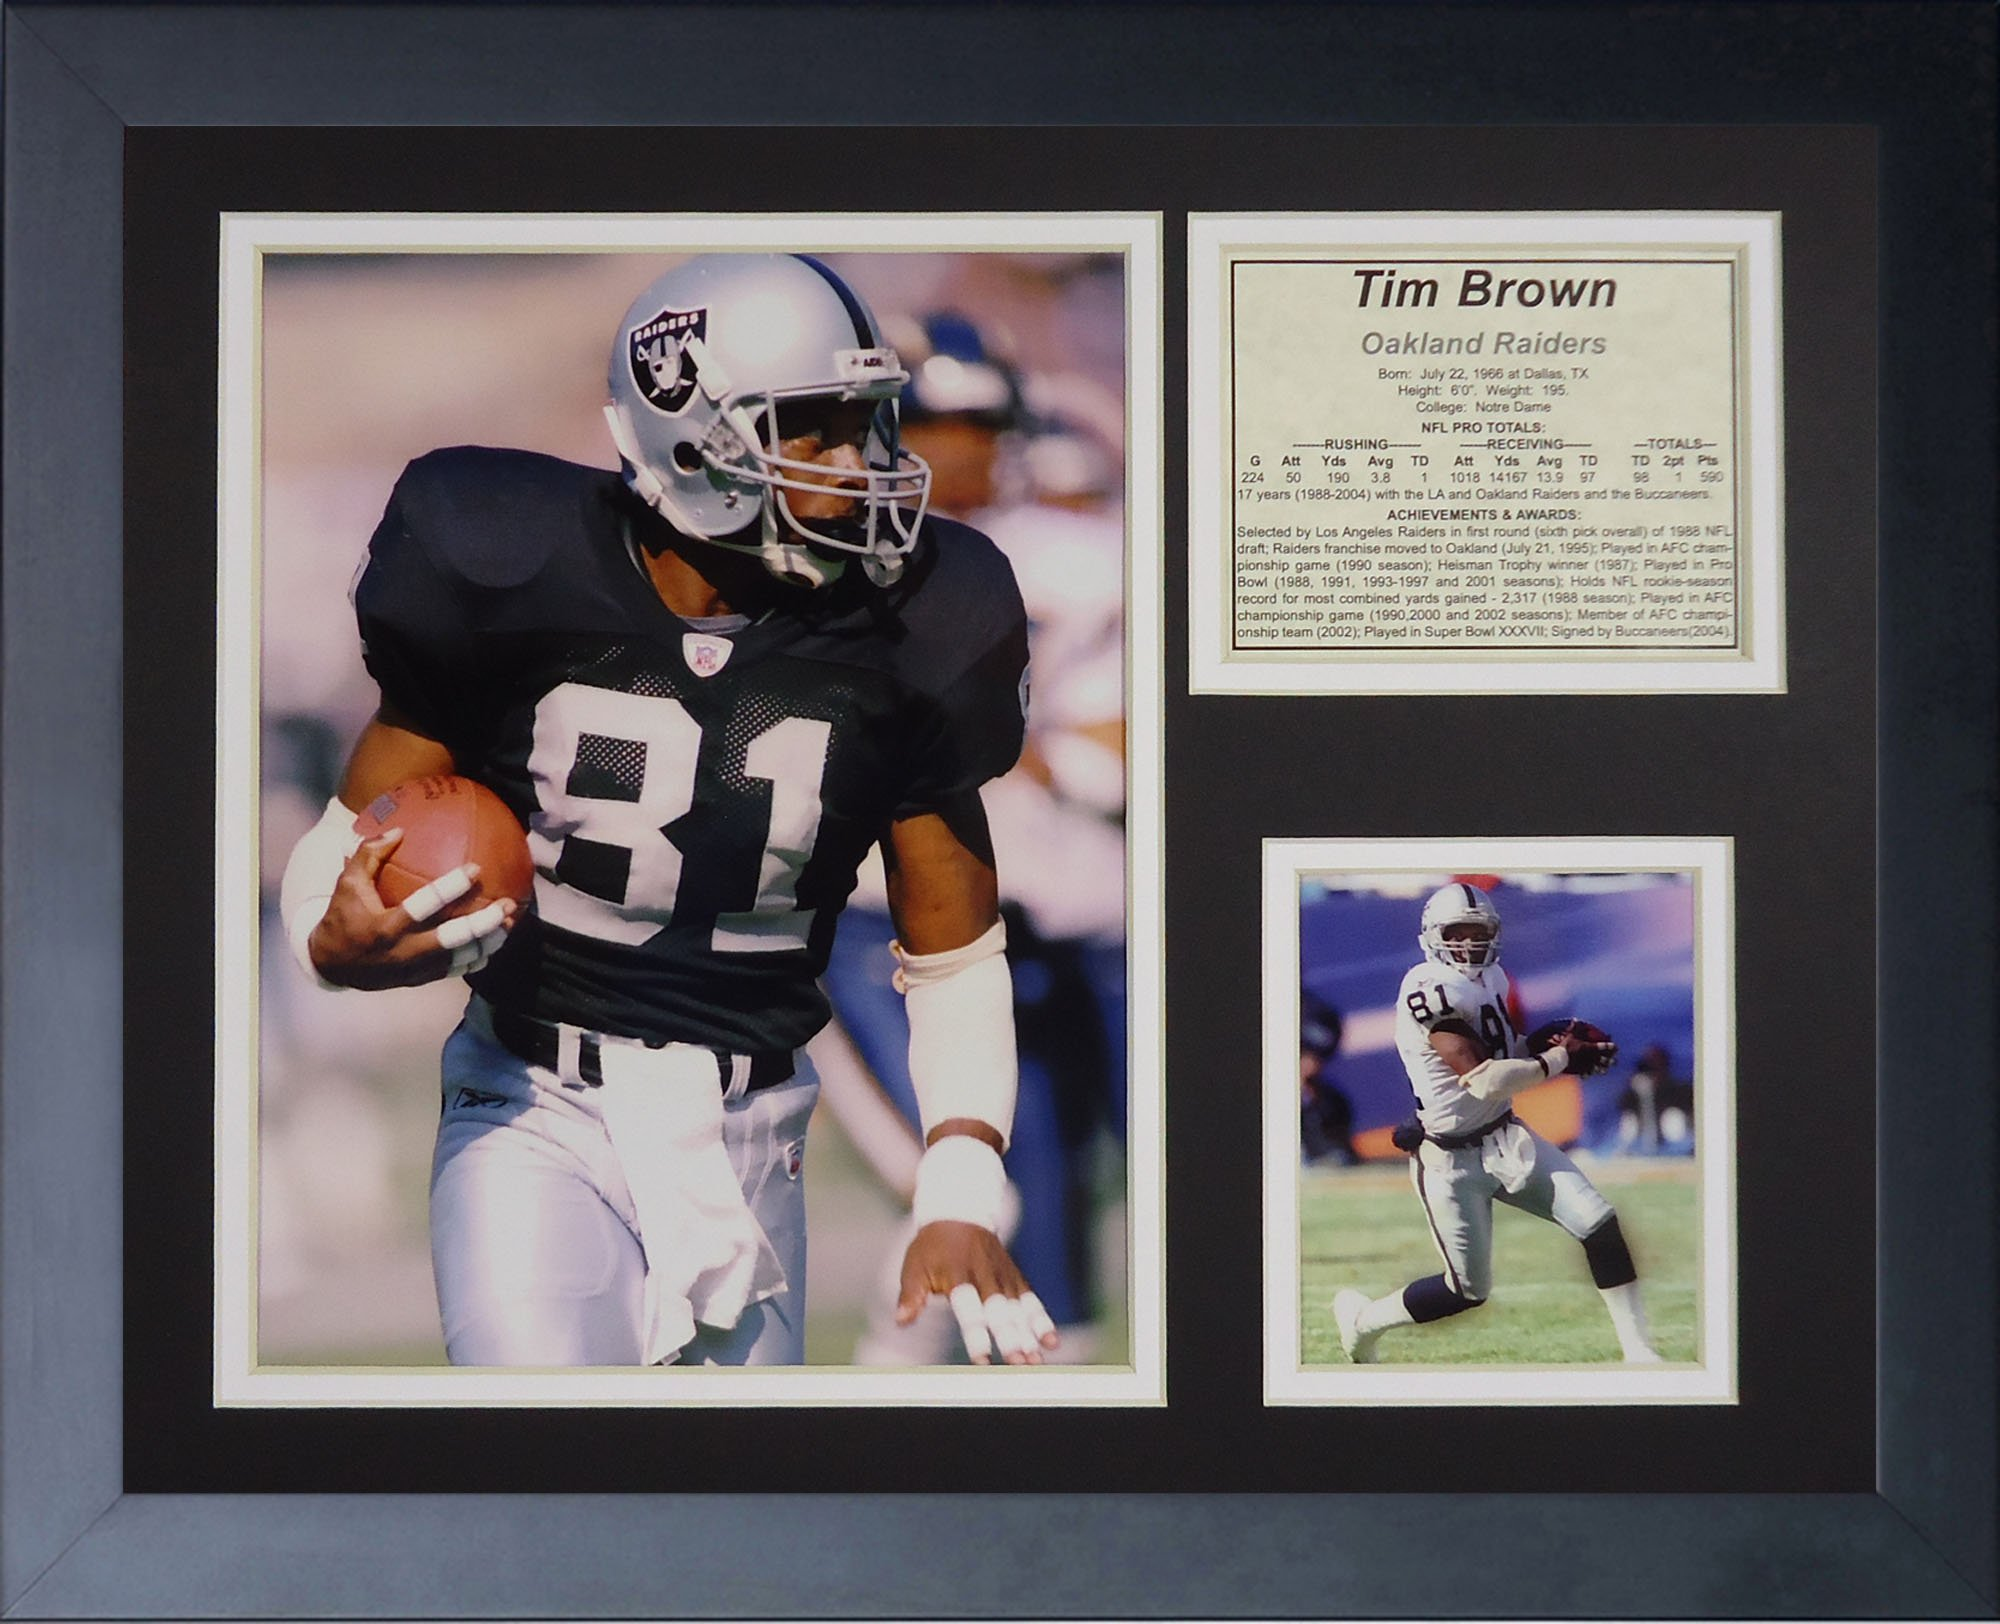 Legends Never Die ''Tim Brown Raiders Framed Photo Collage, 11 x 14-Inch by Legends Never Die